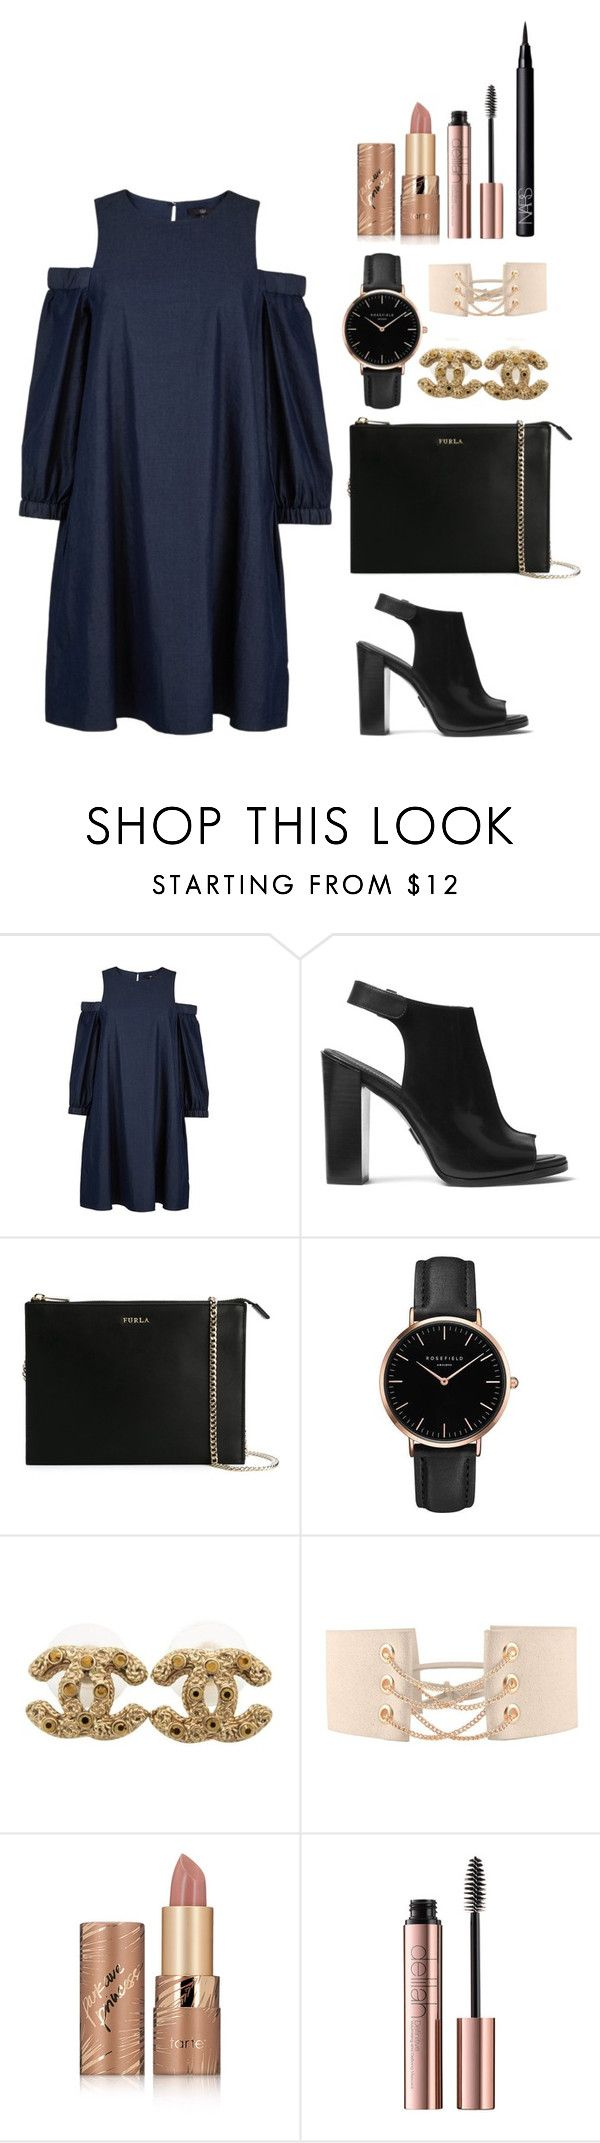 """Aristocrat"" by itsmeambra ❤ liked on Polyvore featuring TIBI, Michael Kors, Furla, Topshop, Chanel, tarte and NARS Cosmetics"